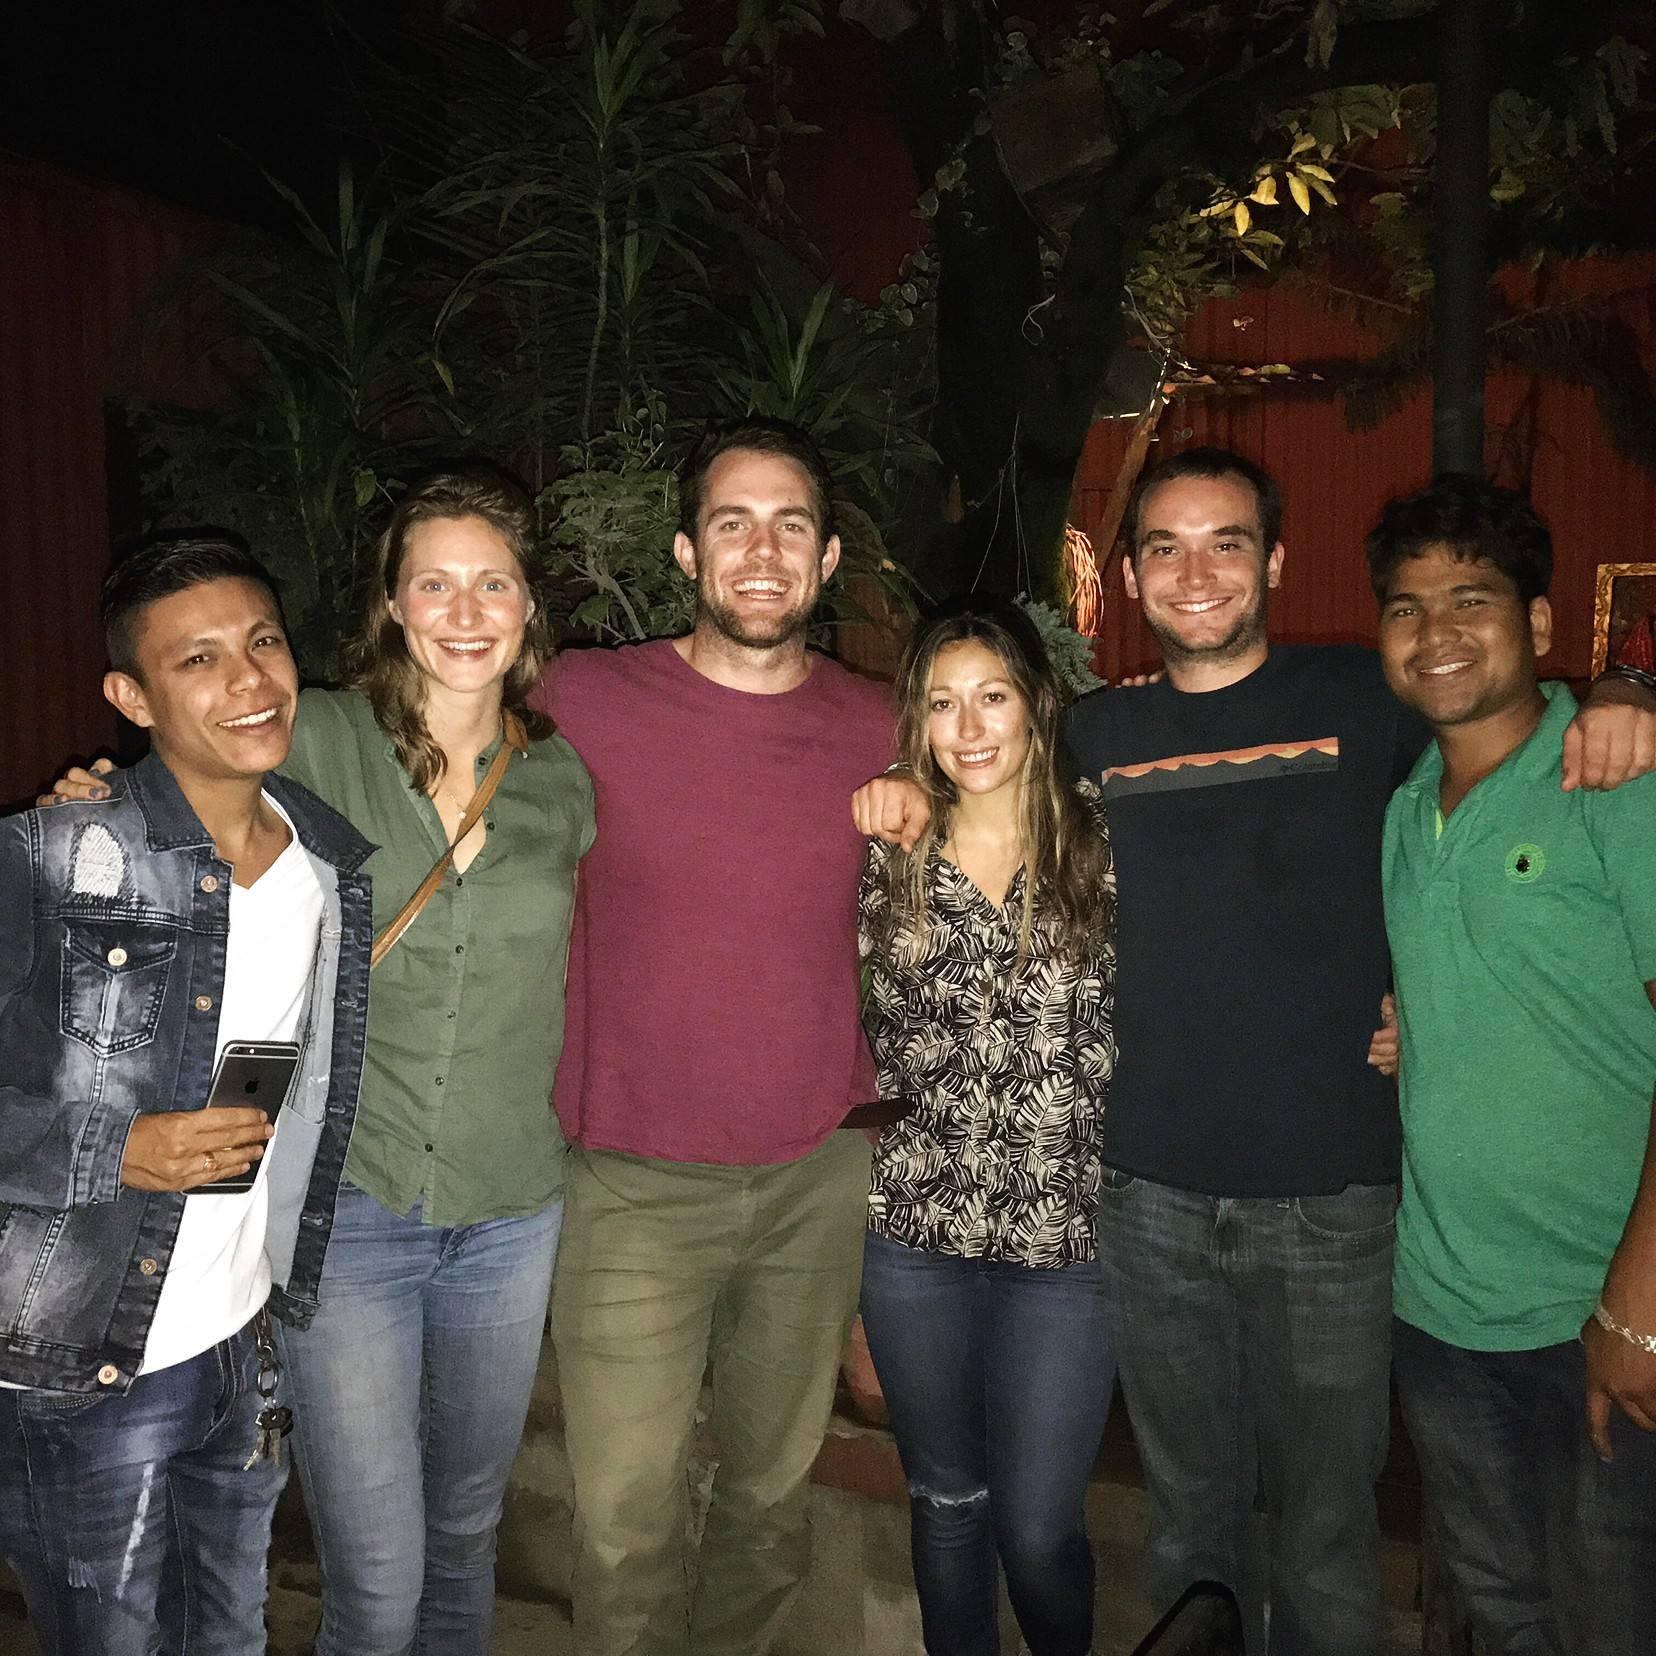 Our newest Fellows Sarah, Taylor and Aaron are in Nepal now!